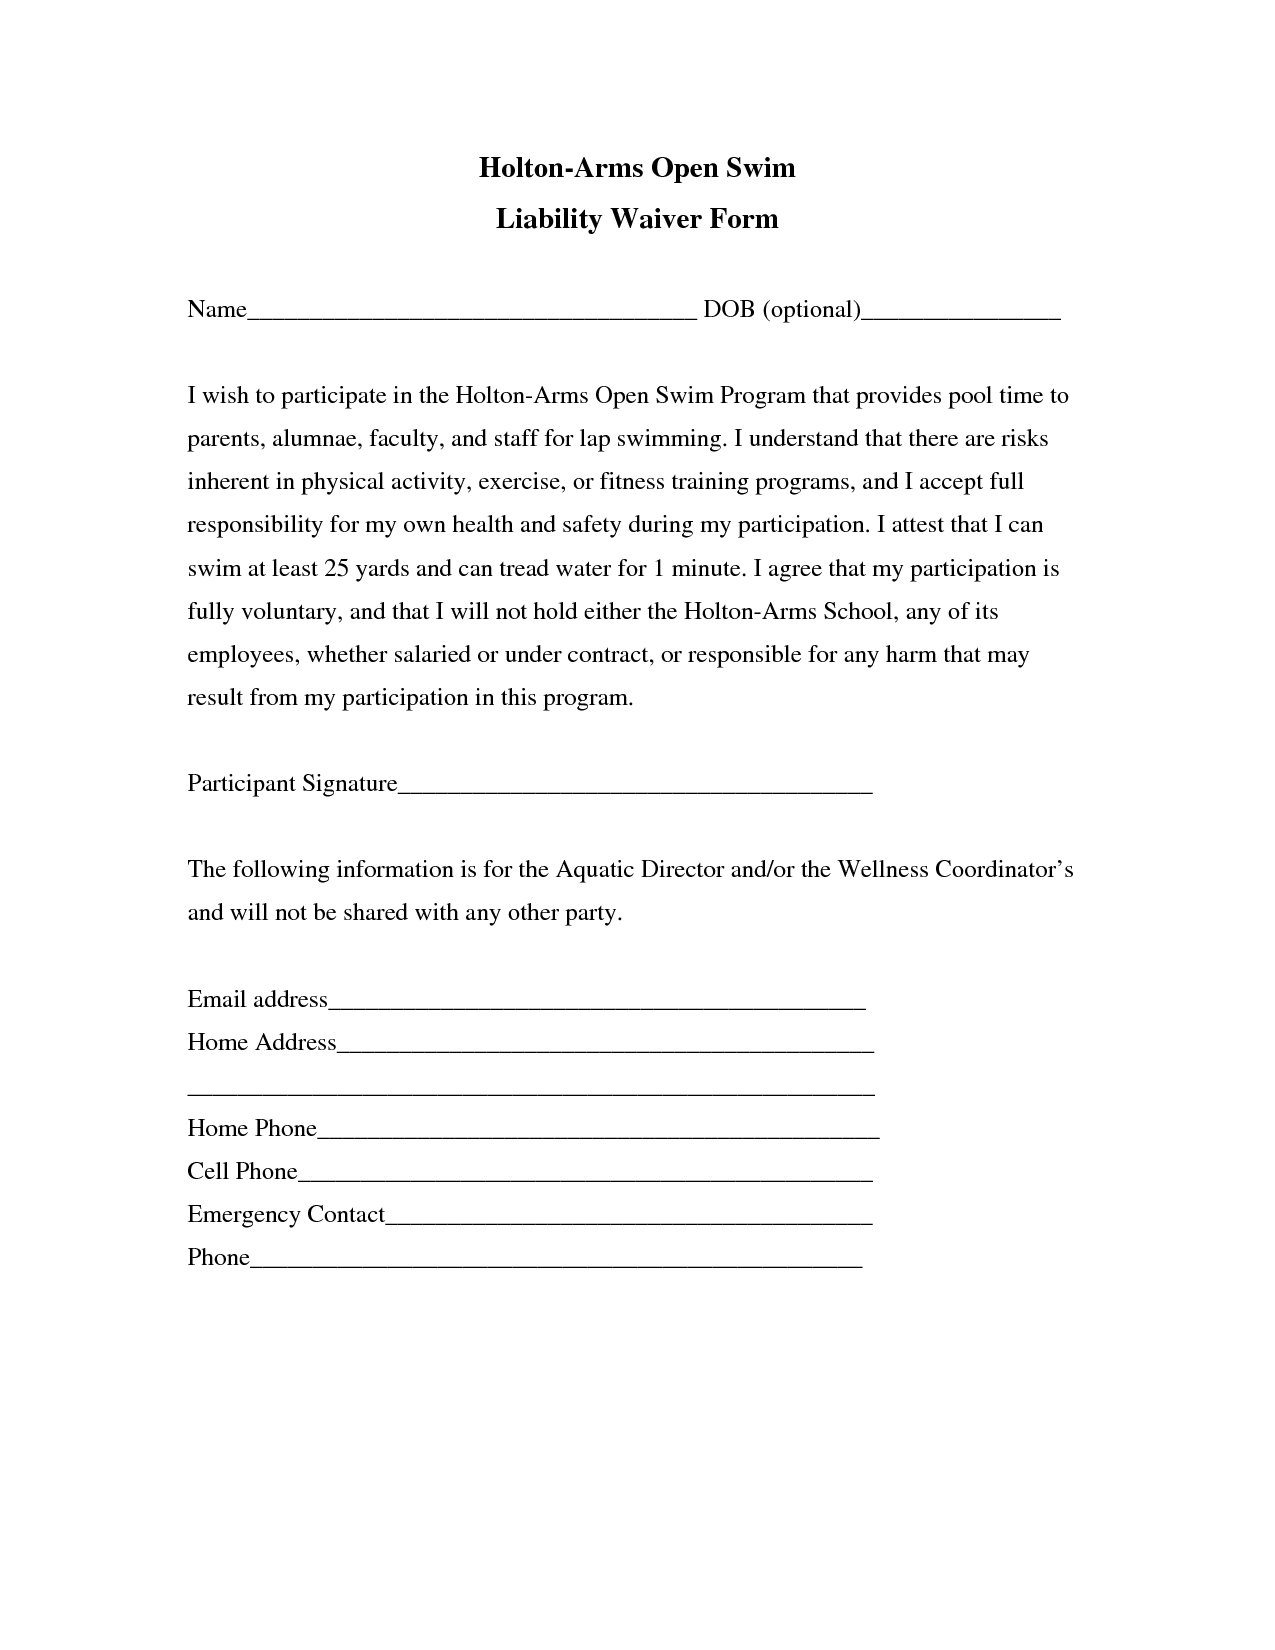 Insurance Waiver Form Template